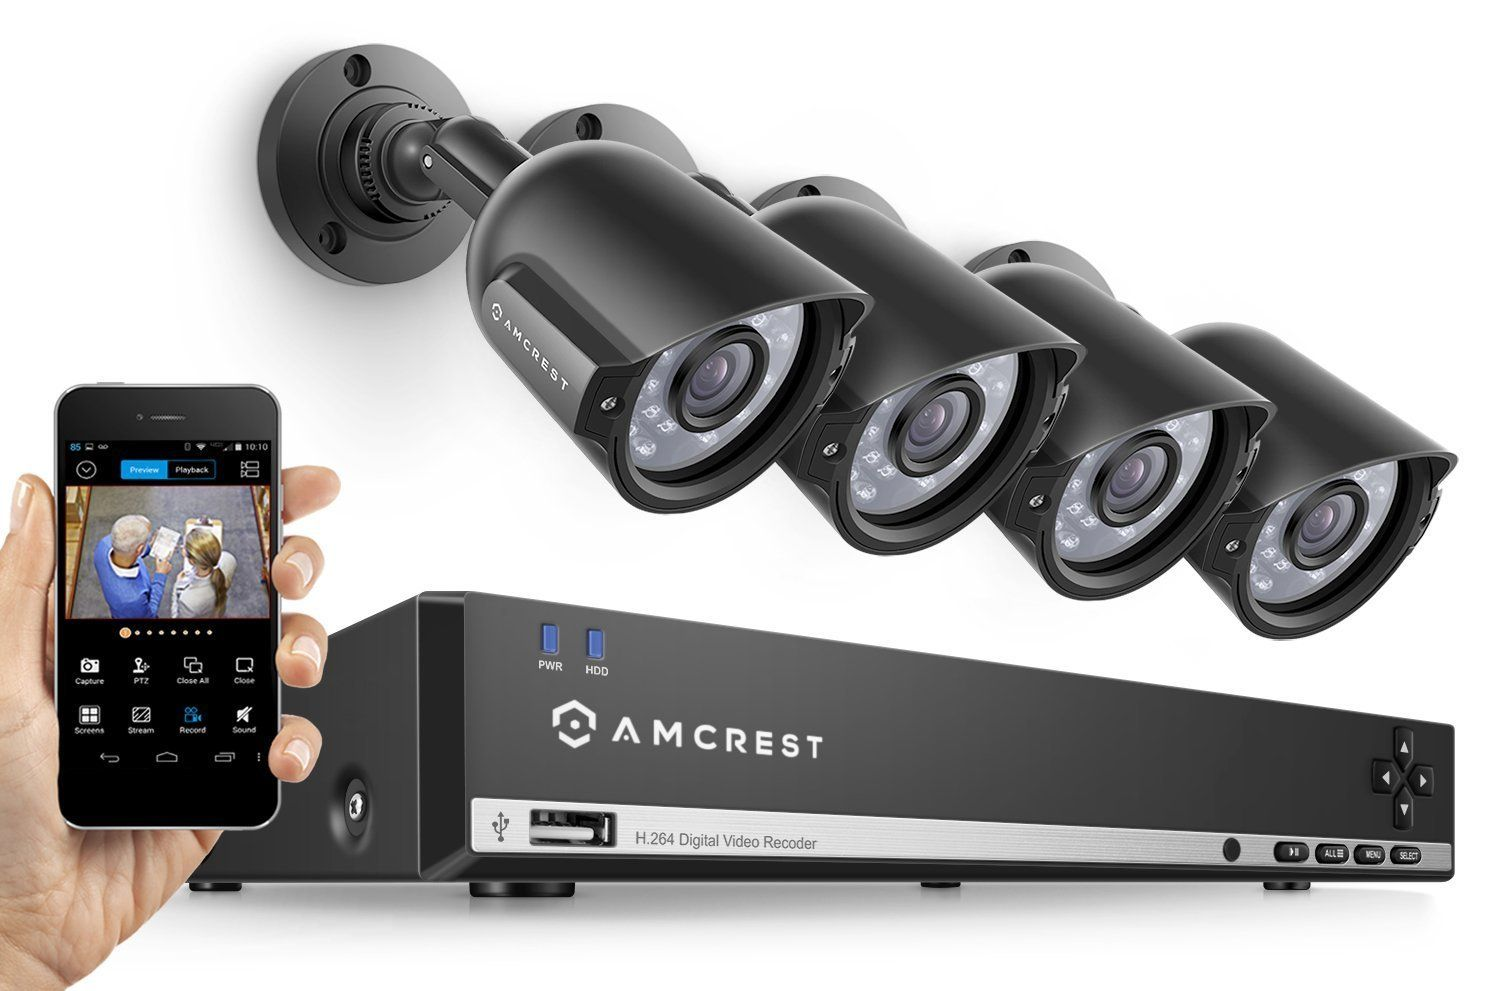 Diy Home Security Cameras Reviews Best Wireless Security Camera Systems With Night Vision